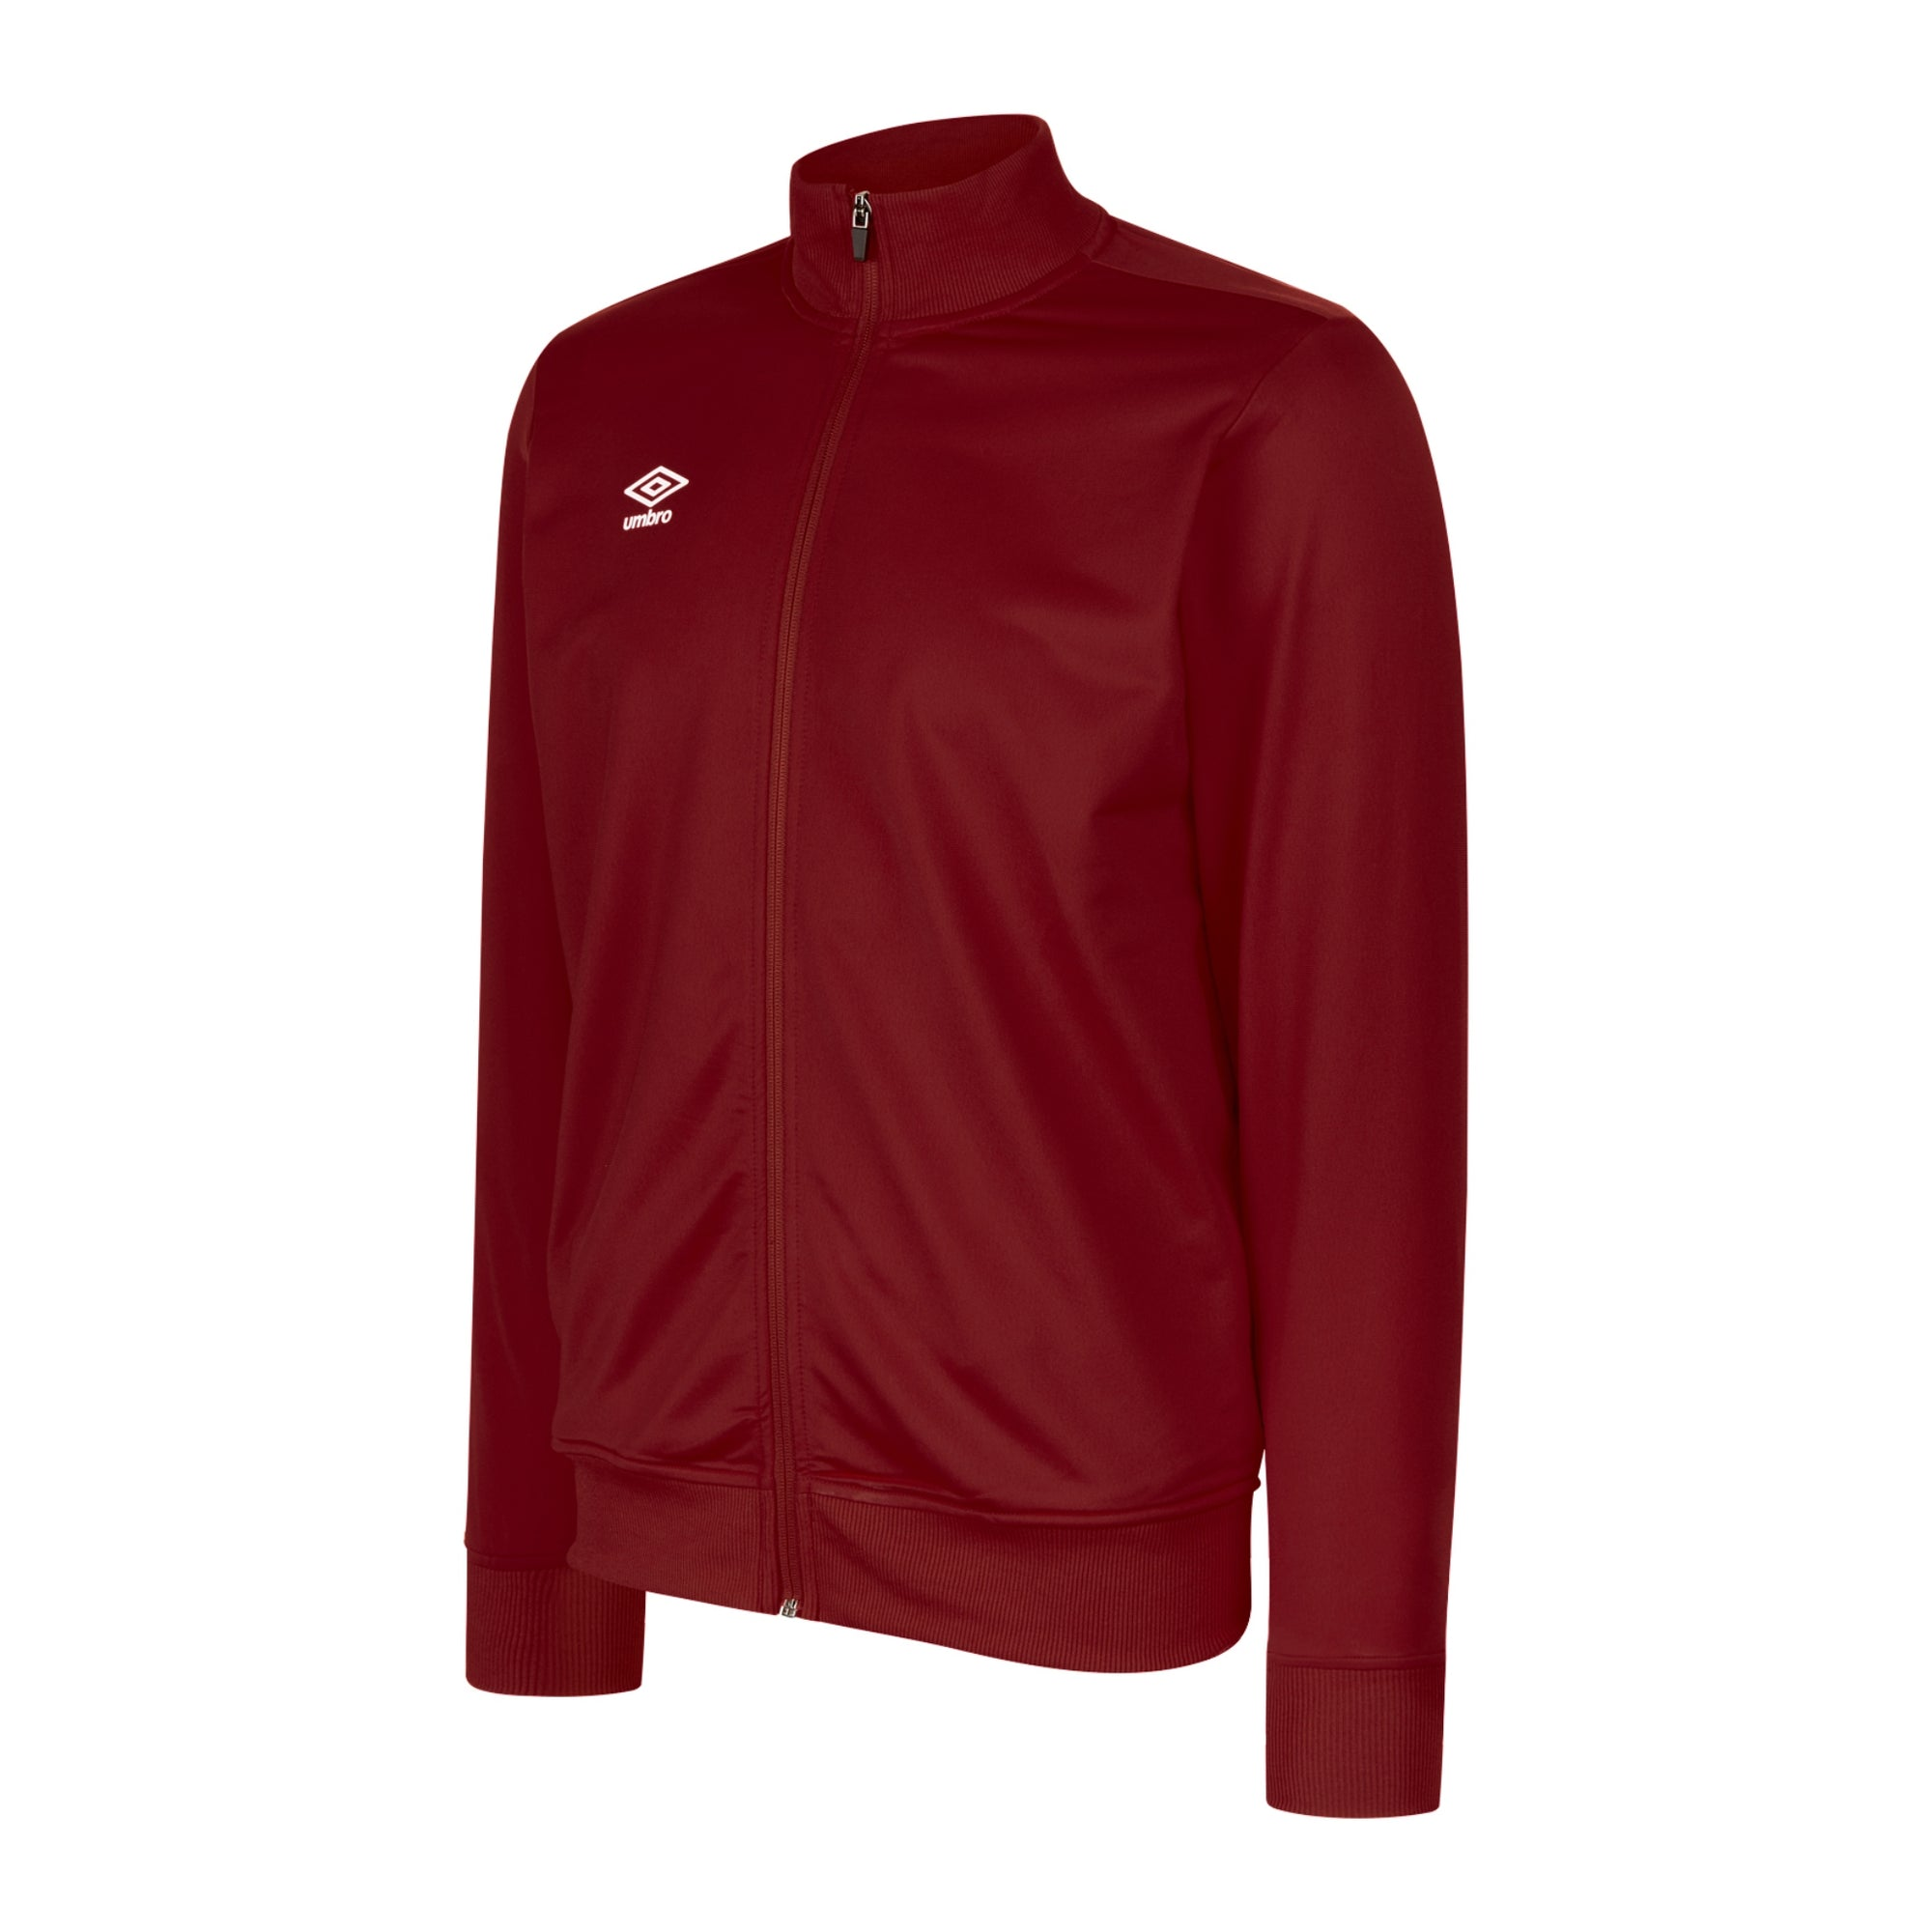 Umbro Club Essential Poly Jacket - New Claret